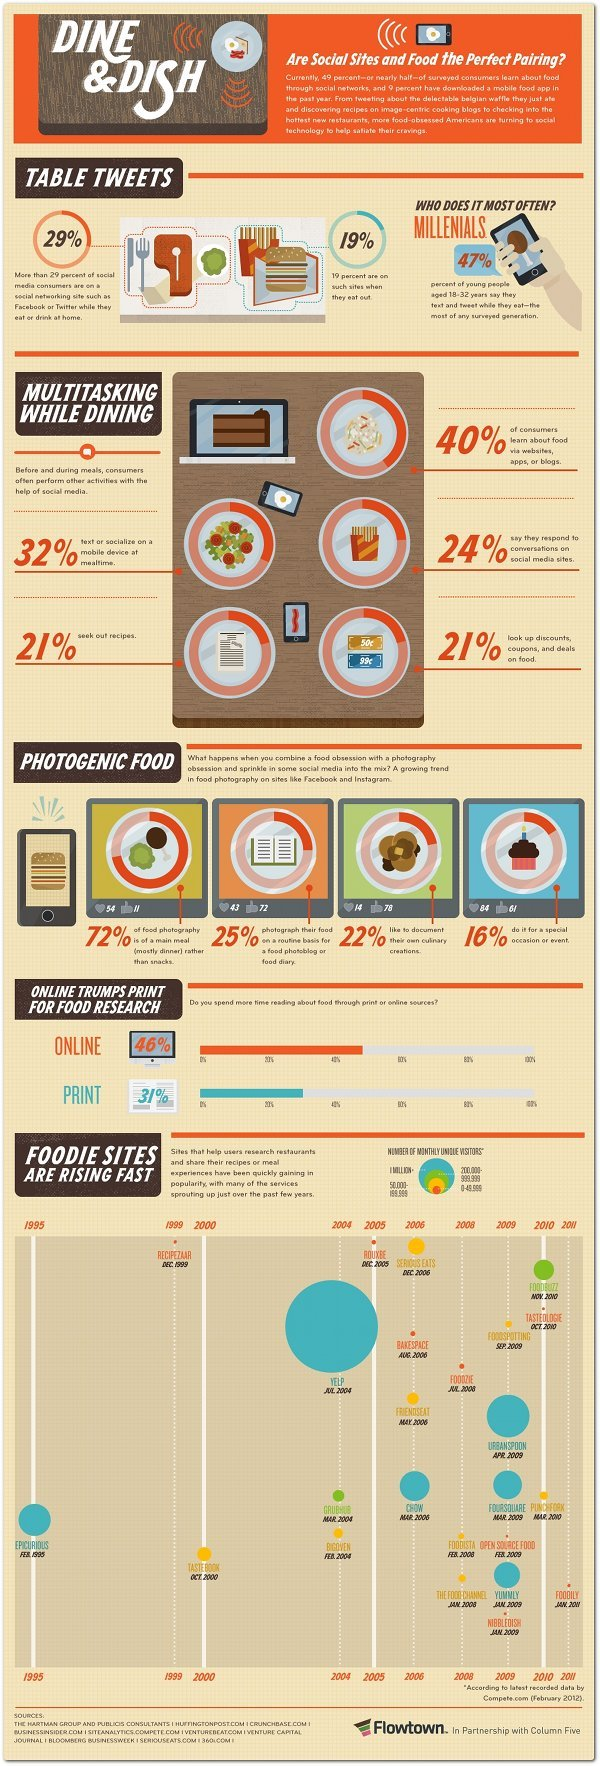 Social Media & Food nfographic